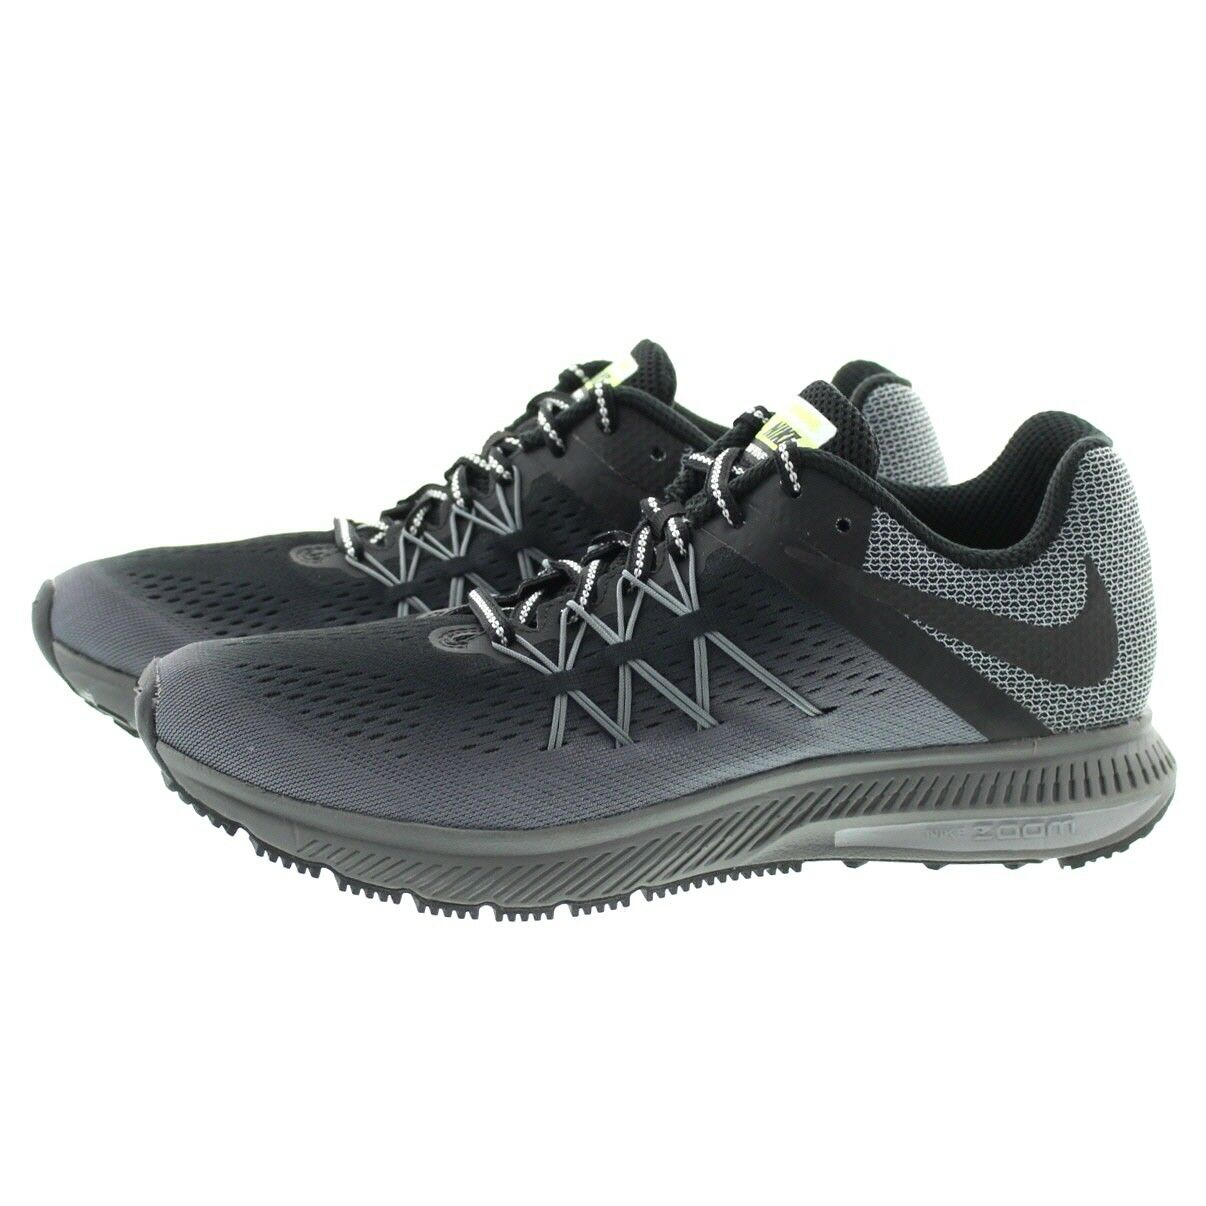 Nike 852441 001 Uomo Air Zoom Winflo 3 Water Resistant Running Shoes Scarpe da Ginnastica